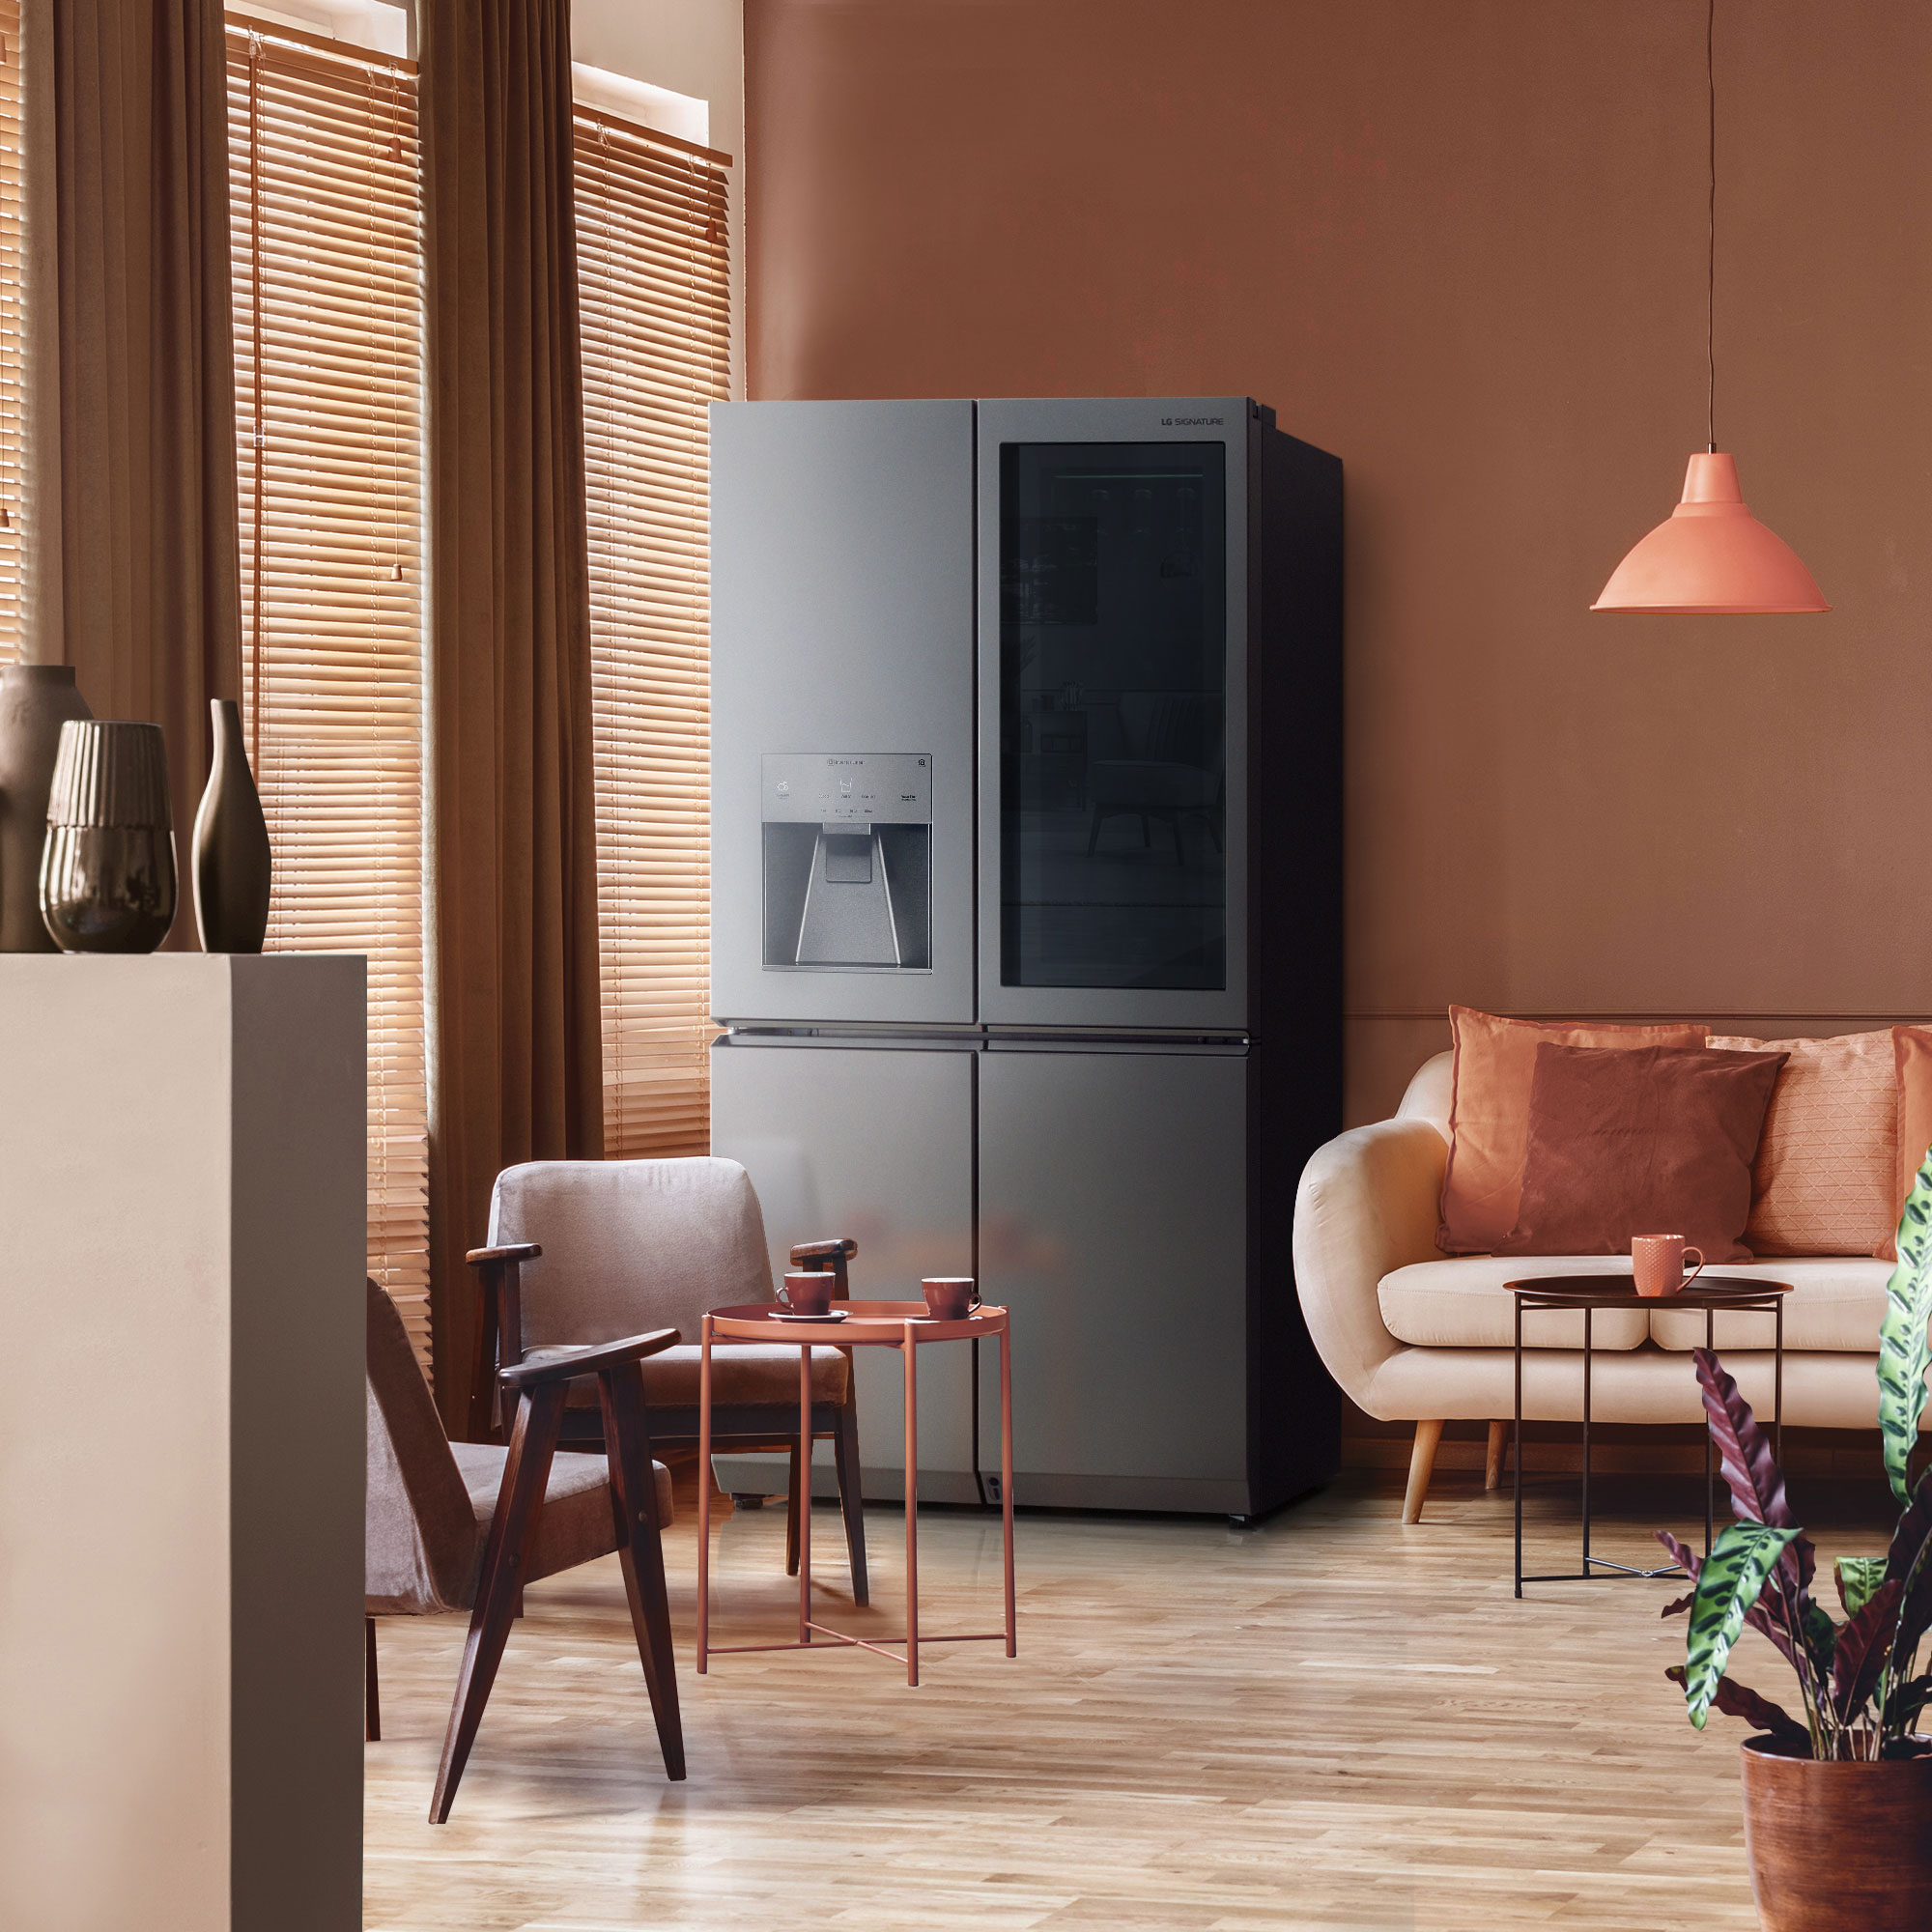 LG SIGNATURE Refrigerator with coral and clay elements